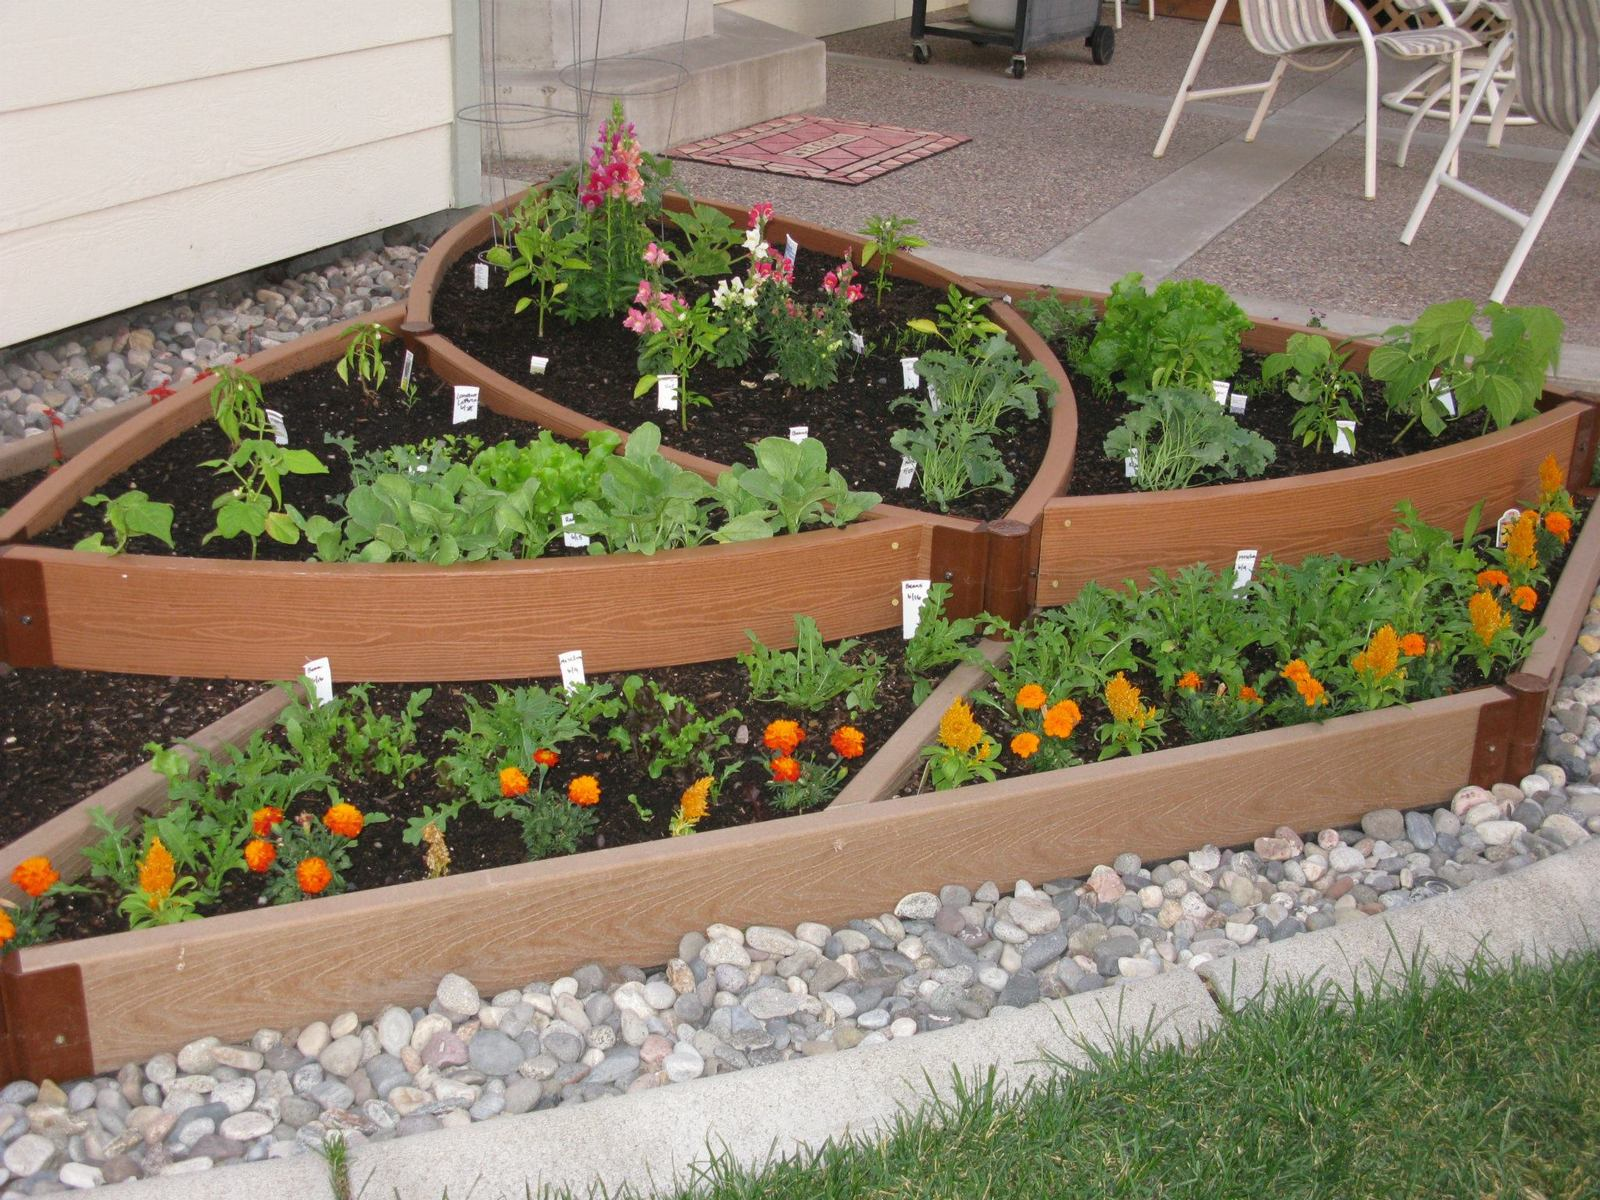 Creative Design For Raised Garden Bed Ideas (View 7 of 10)